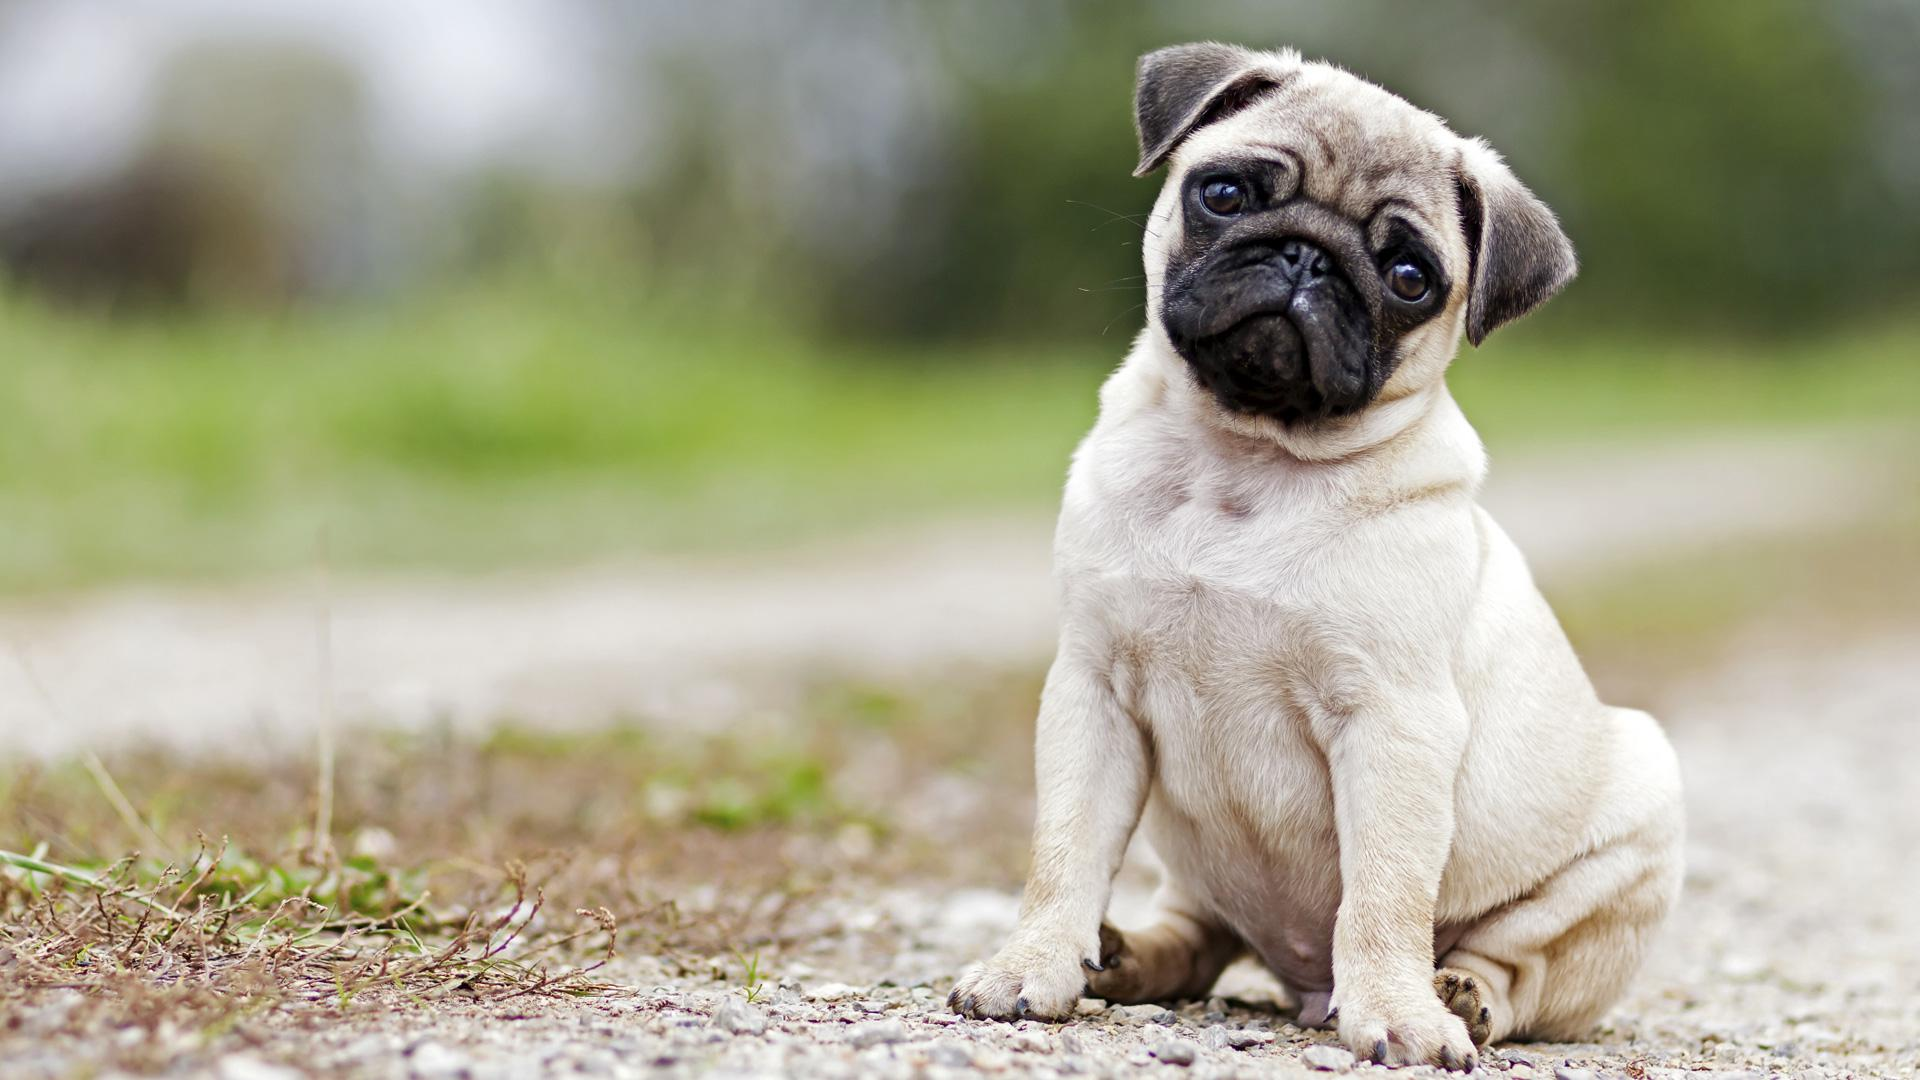 Pug Breeders Puppies for sale near Missouri